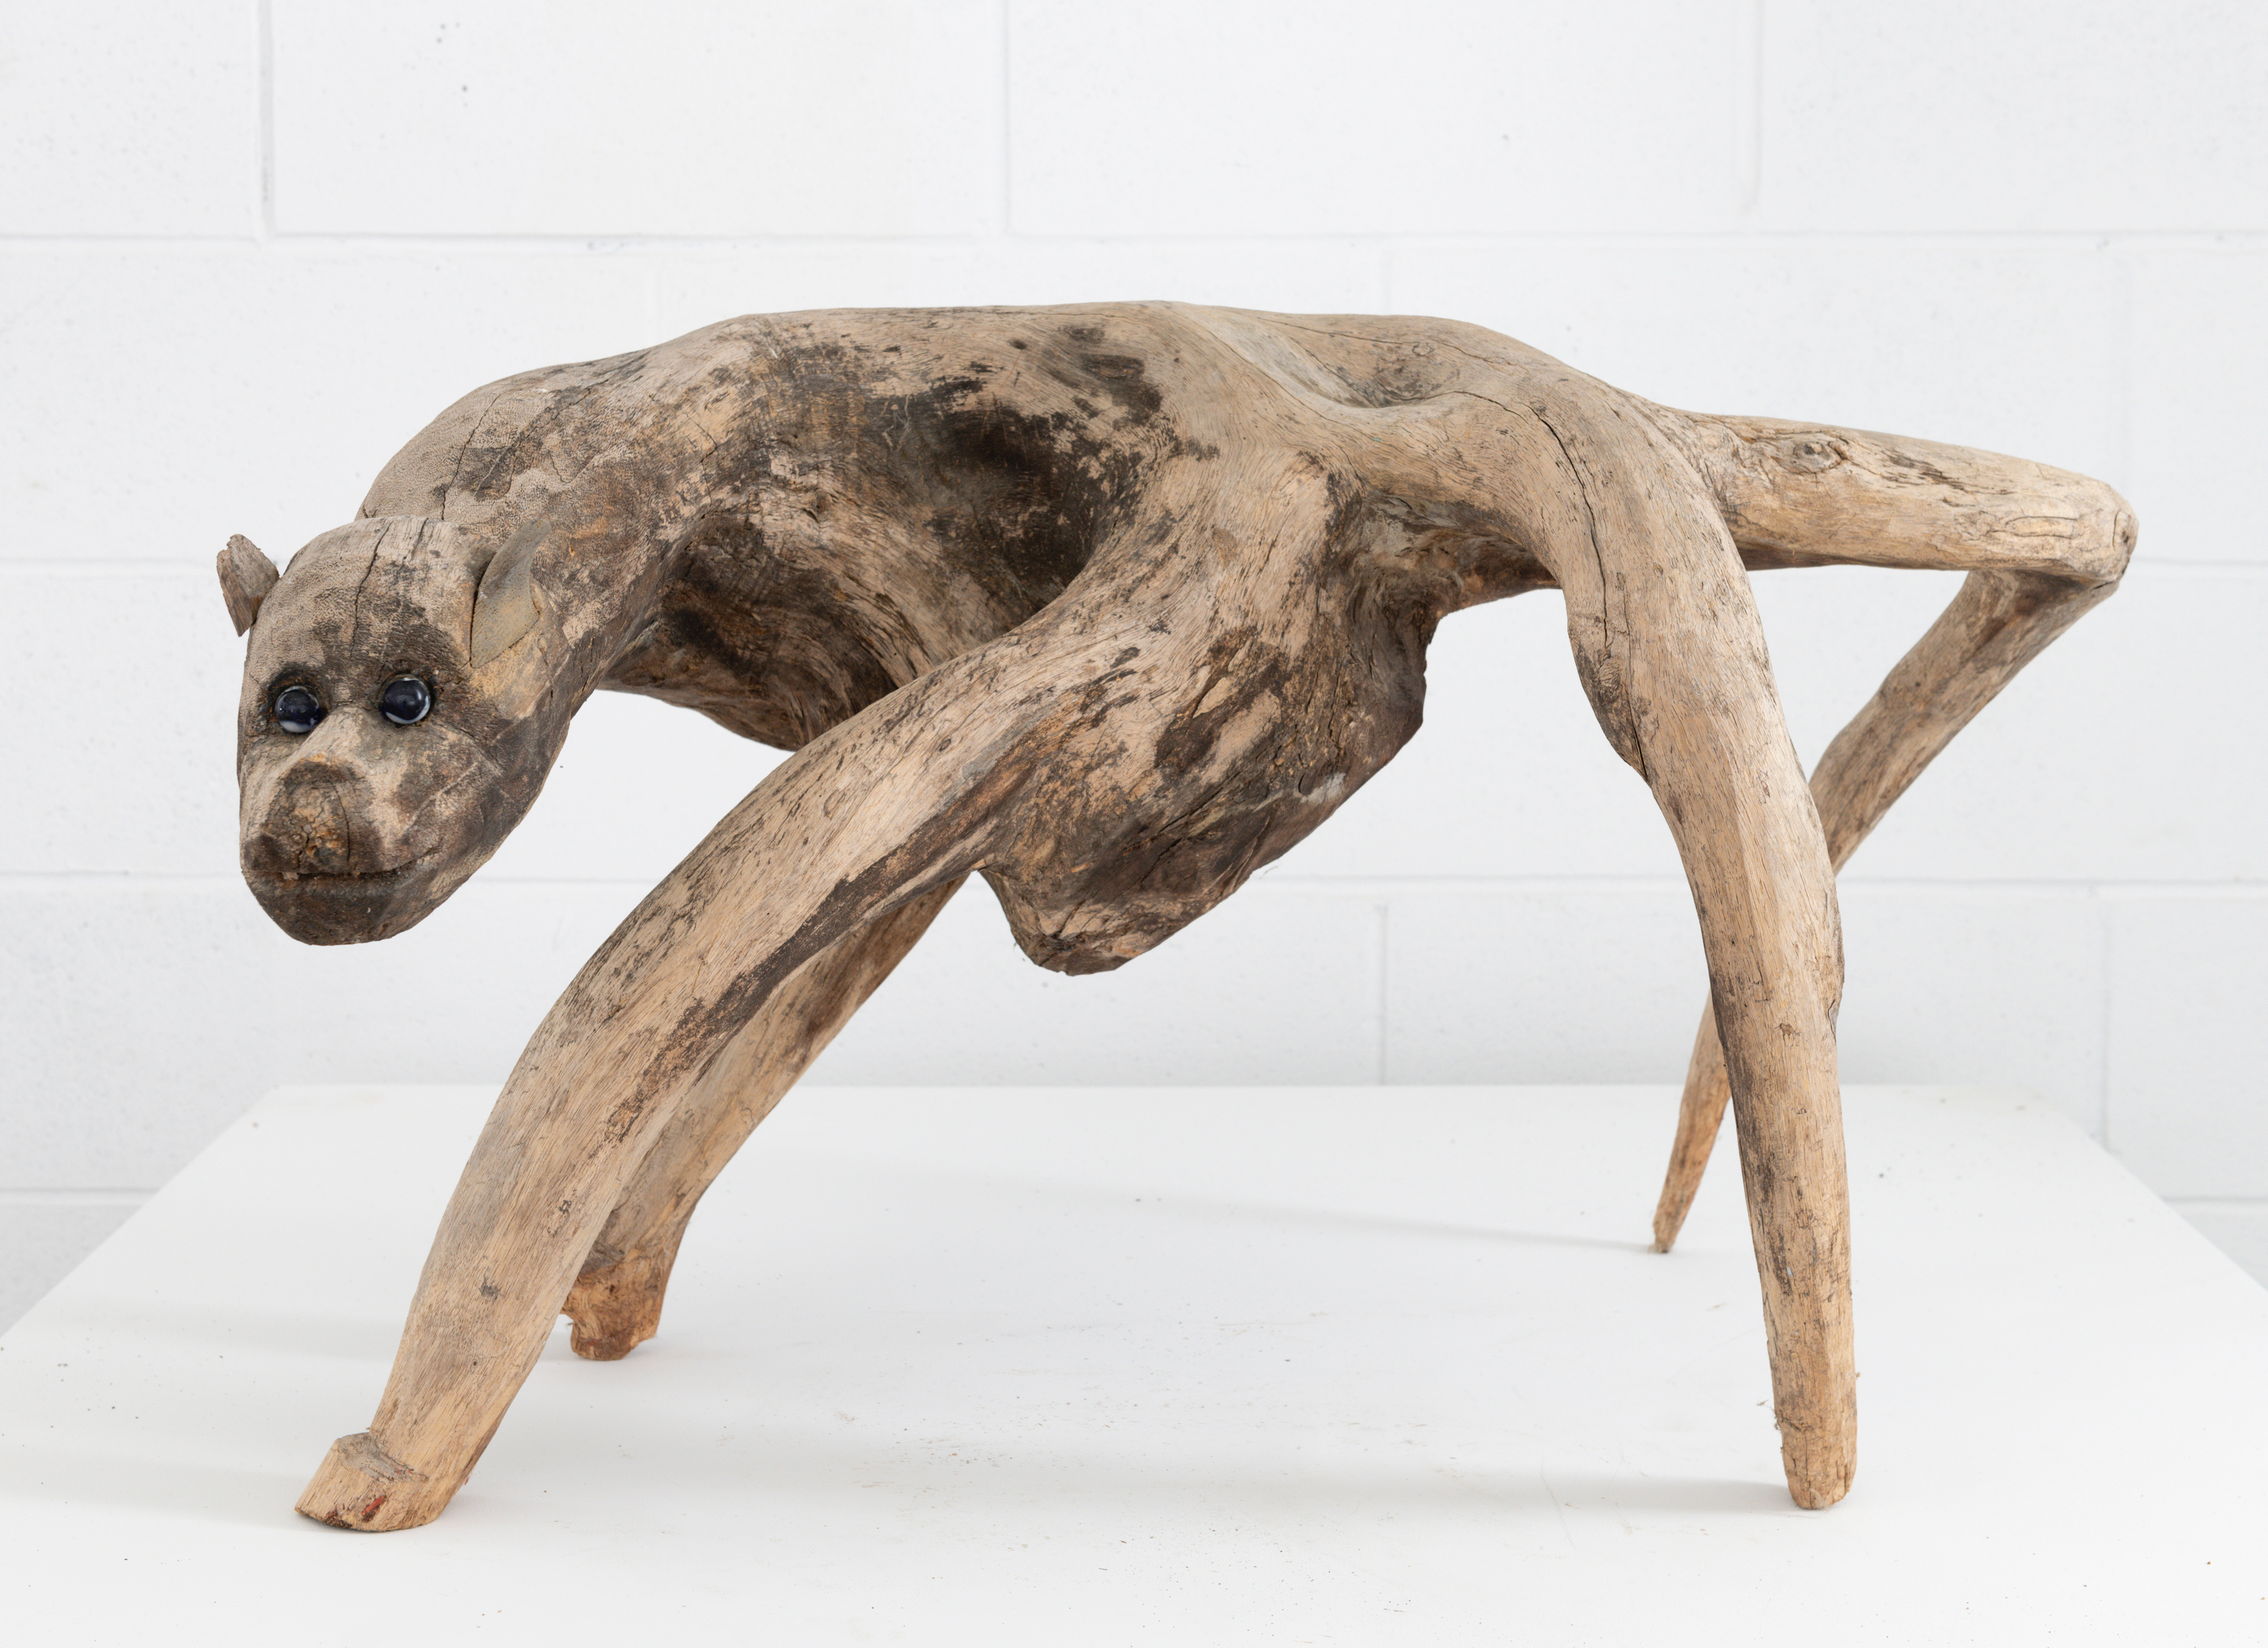 Unknown Artist, Root Carved Dog, Late 20th Century. Wood, marble. 17 x 24 x 27 inches. Courtesy NEXUS SINGULARITY (Aarne Anton)